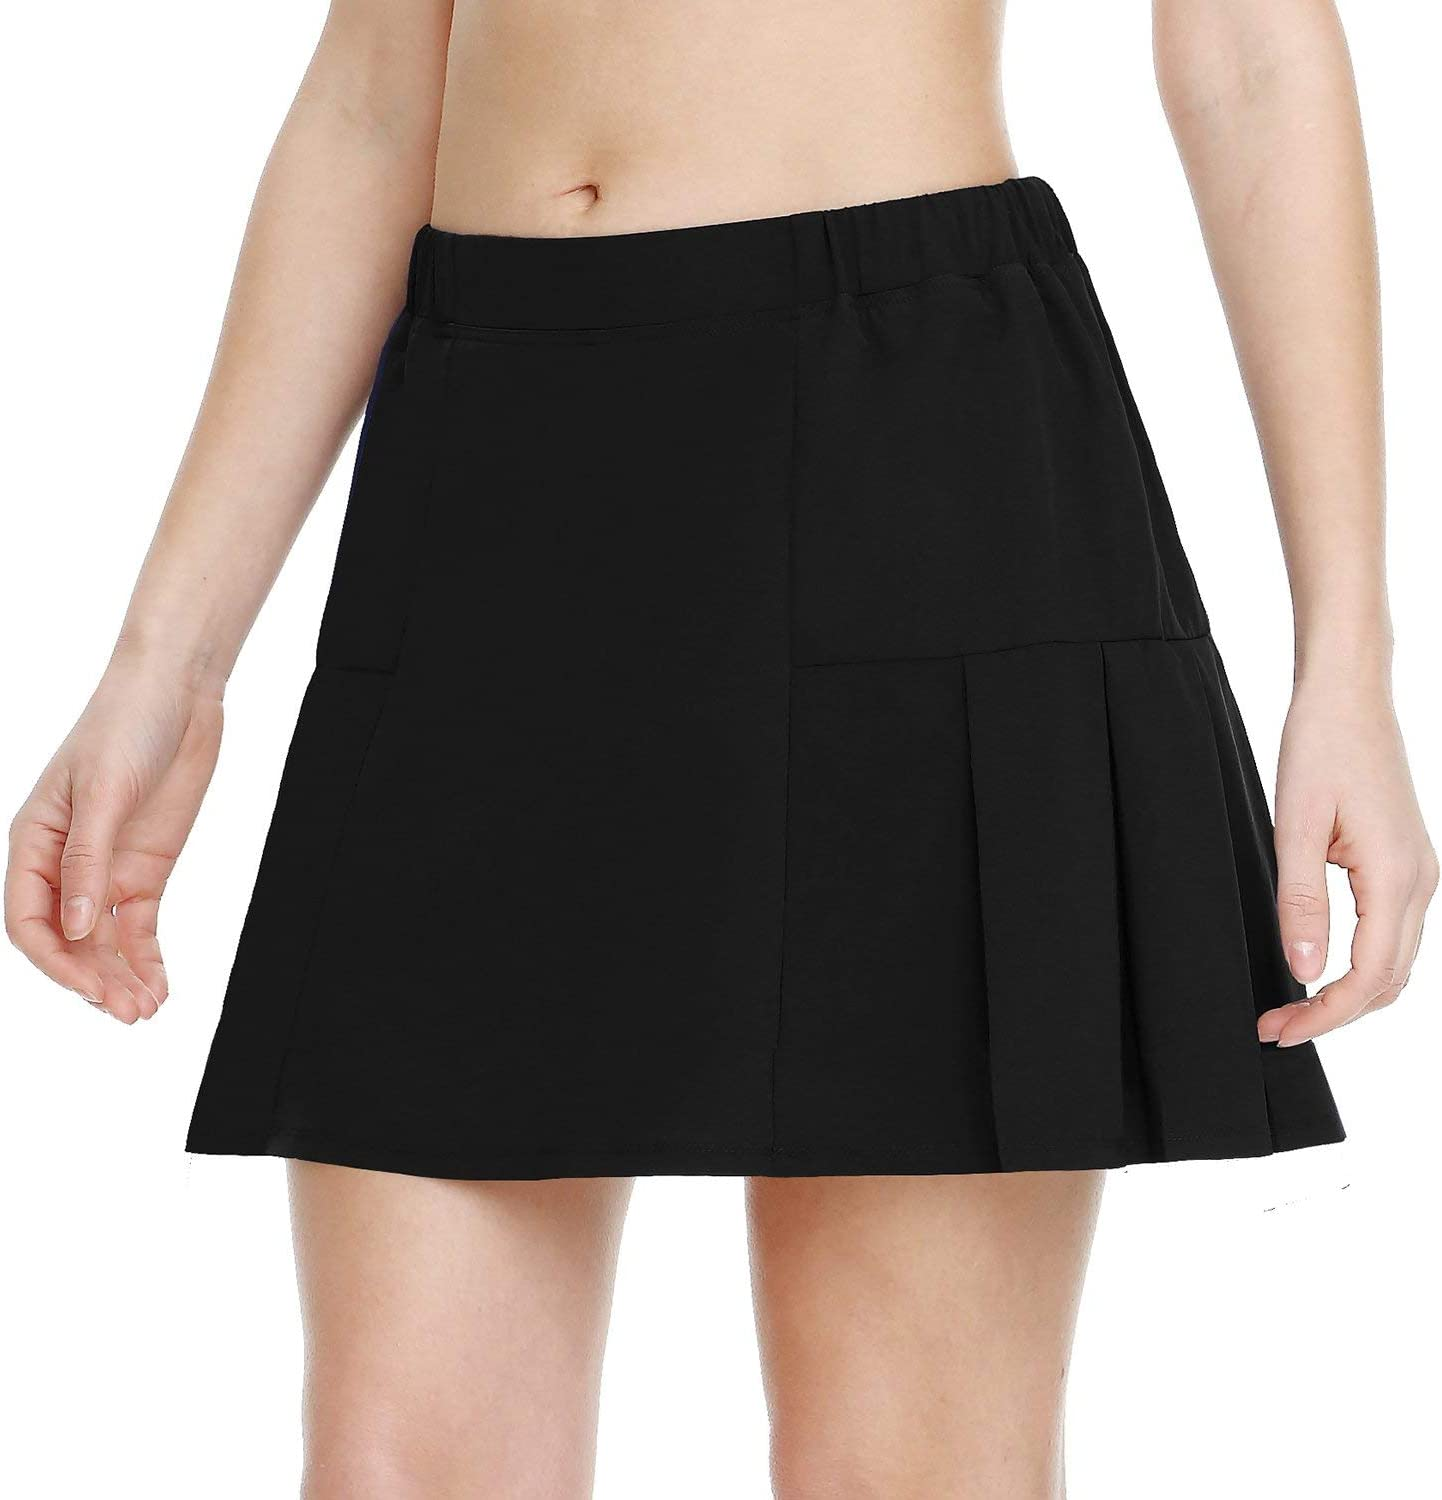 BALEAF Women's Athletic Tennis Skirt Pleated Golf Skort with Pockets for Running Lightweight : Clothing